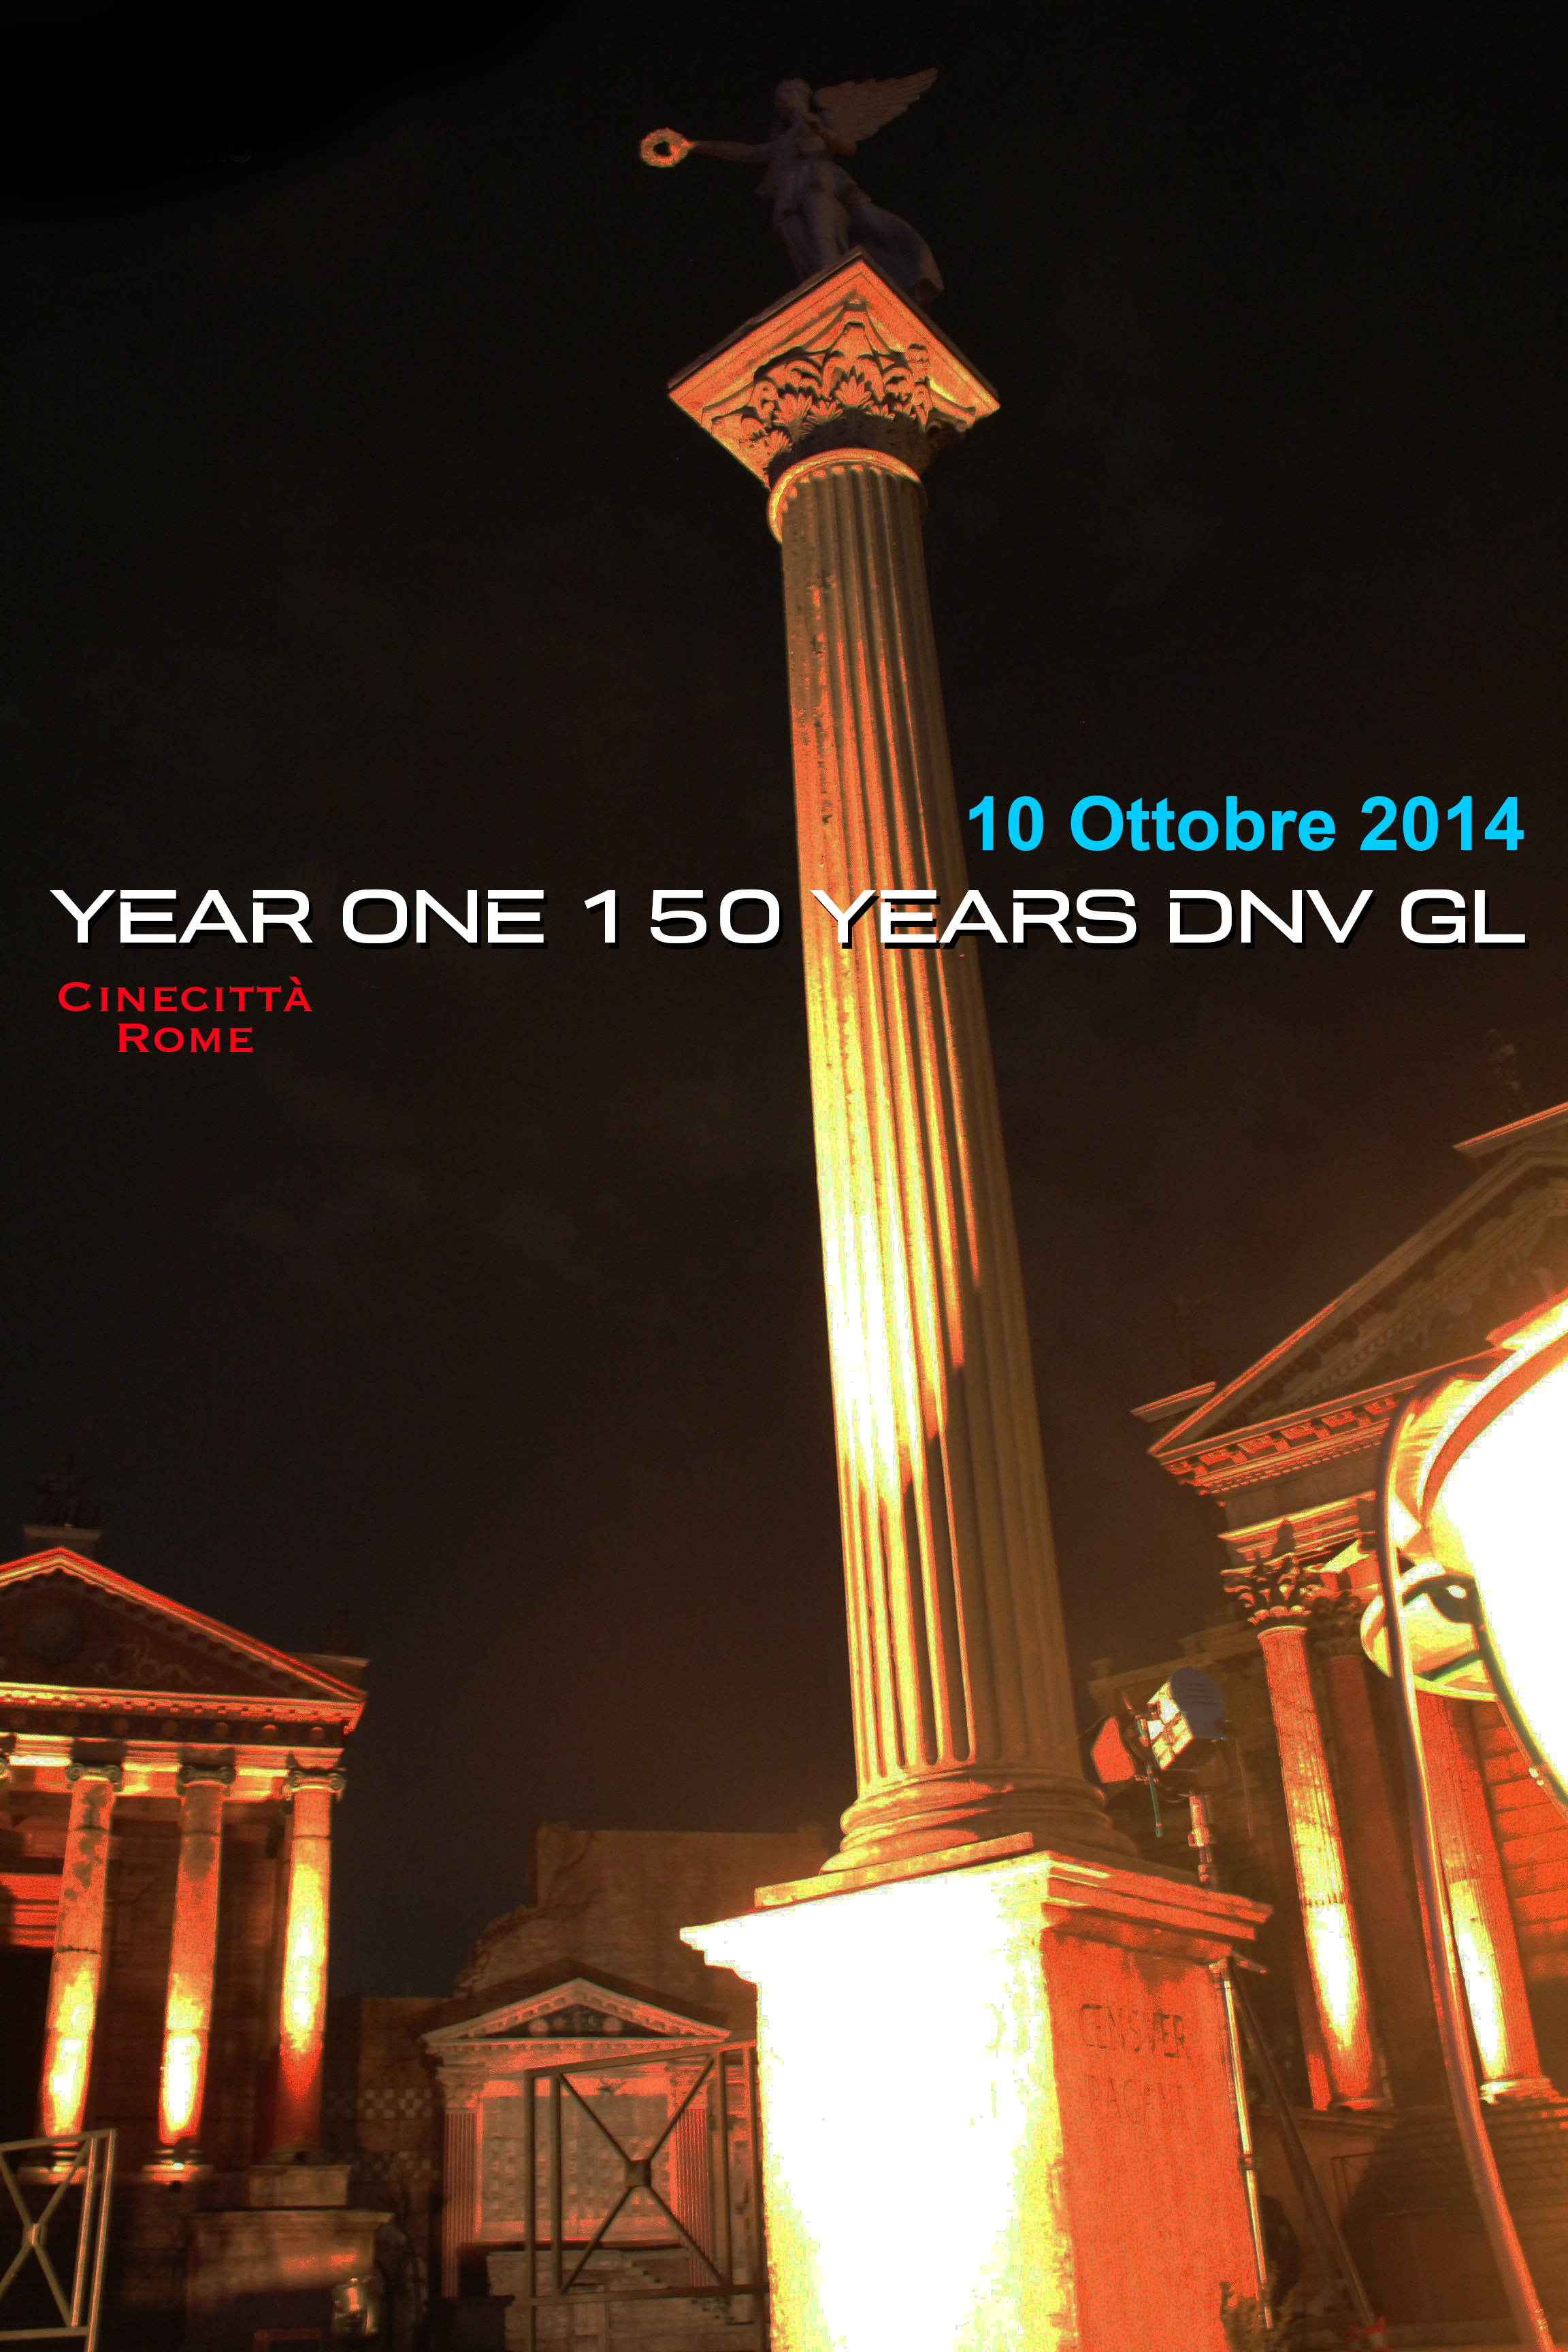 Year One 150 Years DNV GL